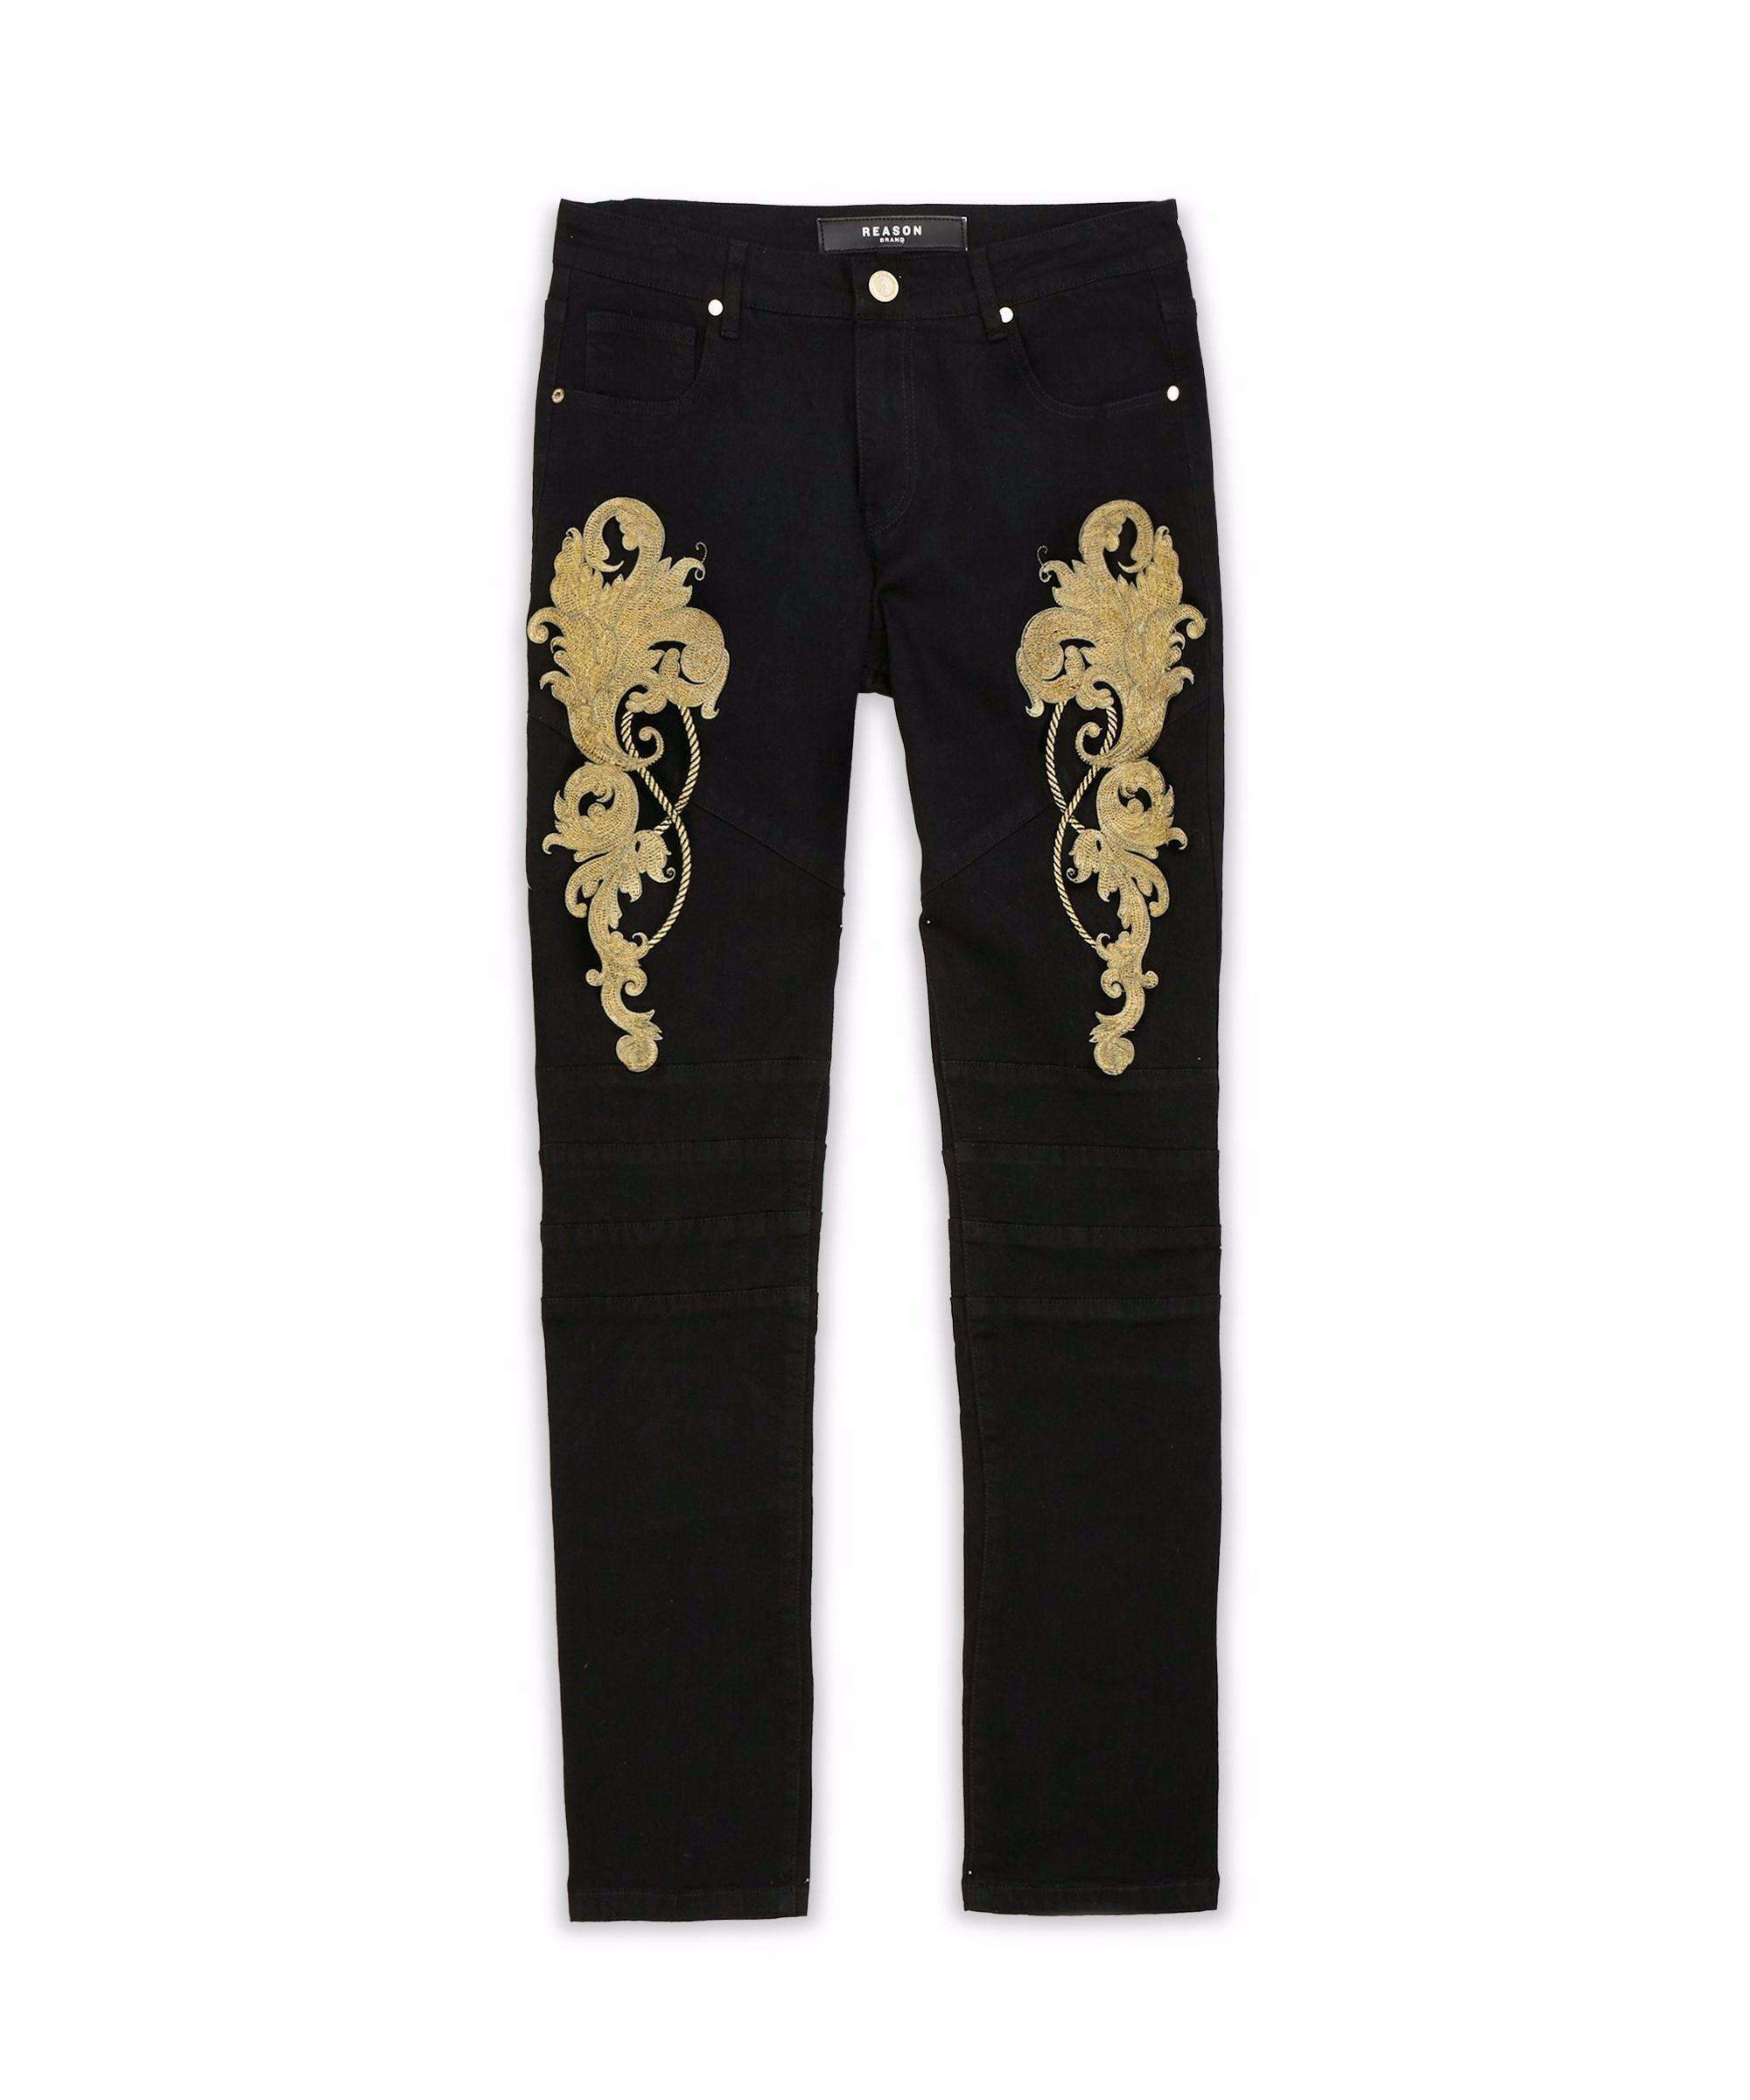 GOLD LEAF DENIM JEAN Reason Clothing